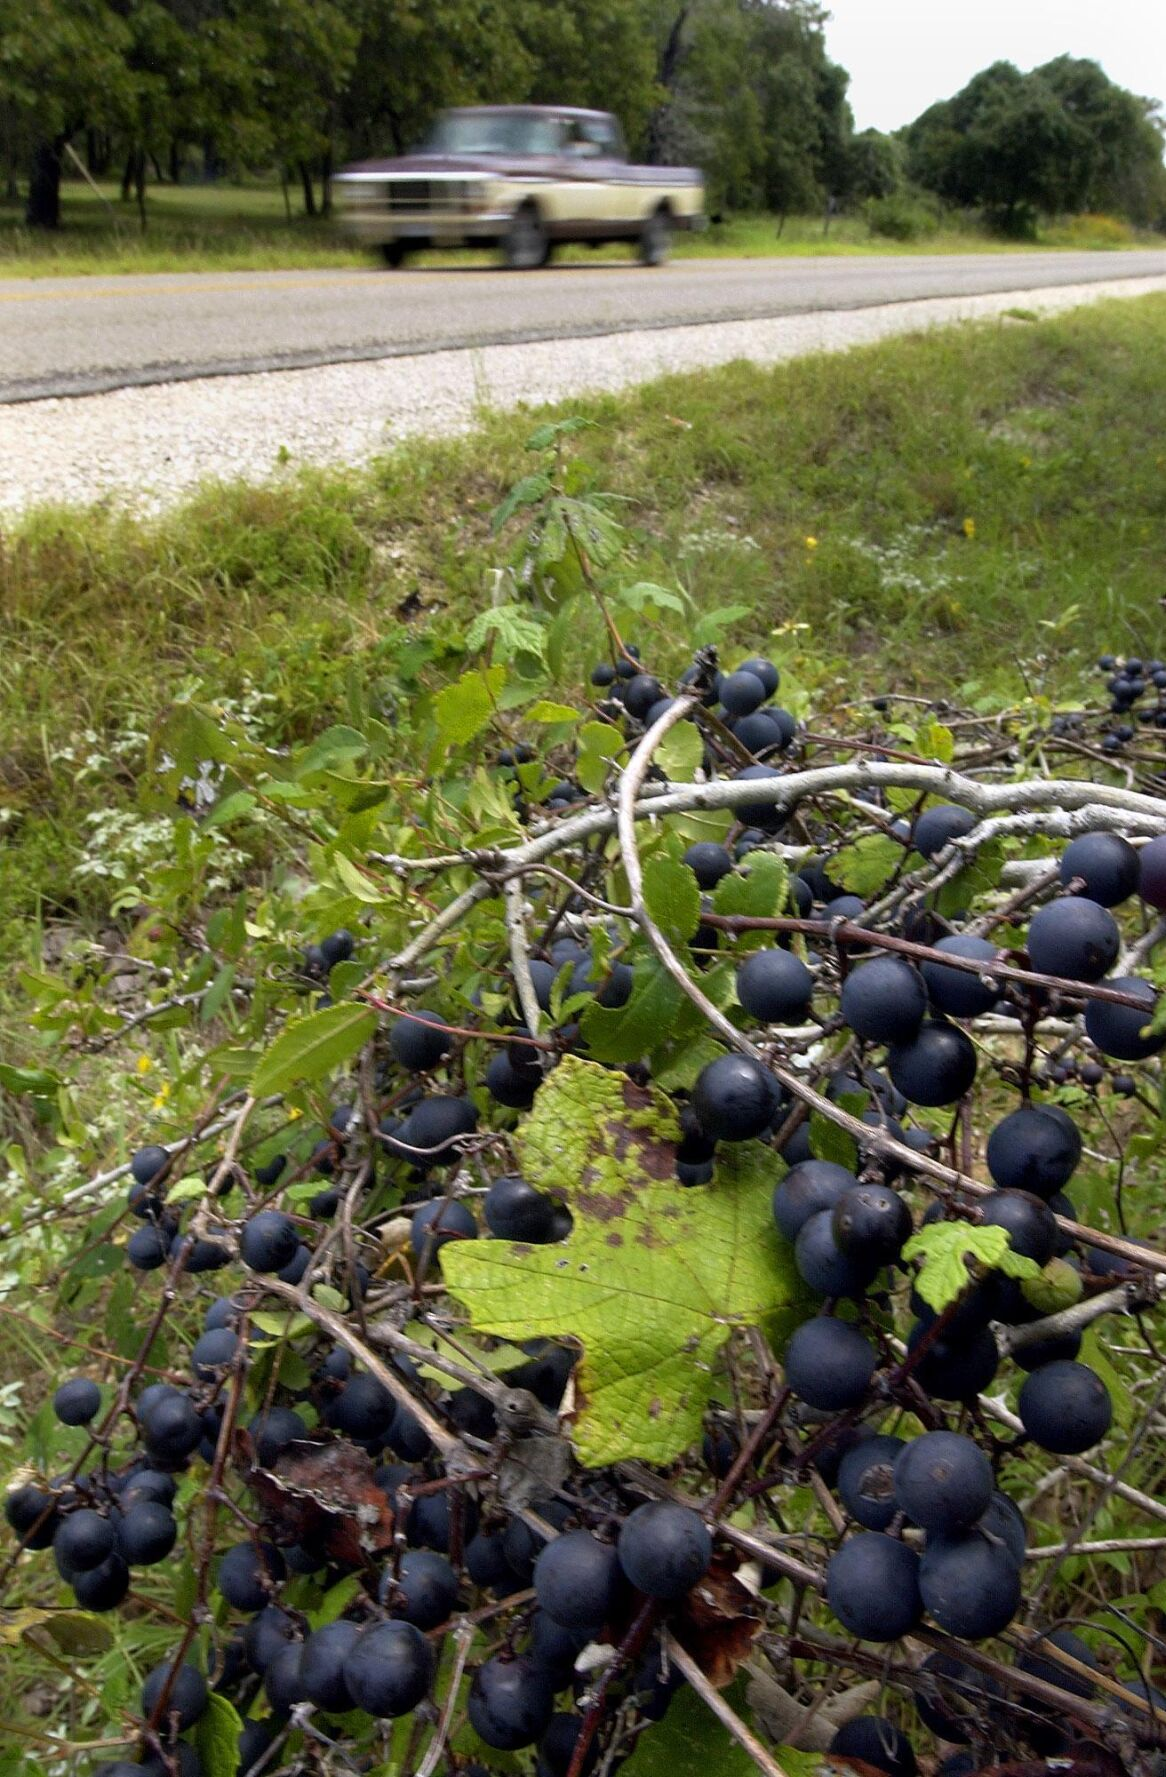 Robert Miller: Wild grape vines attract critters and kids alike